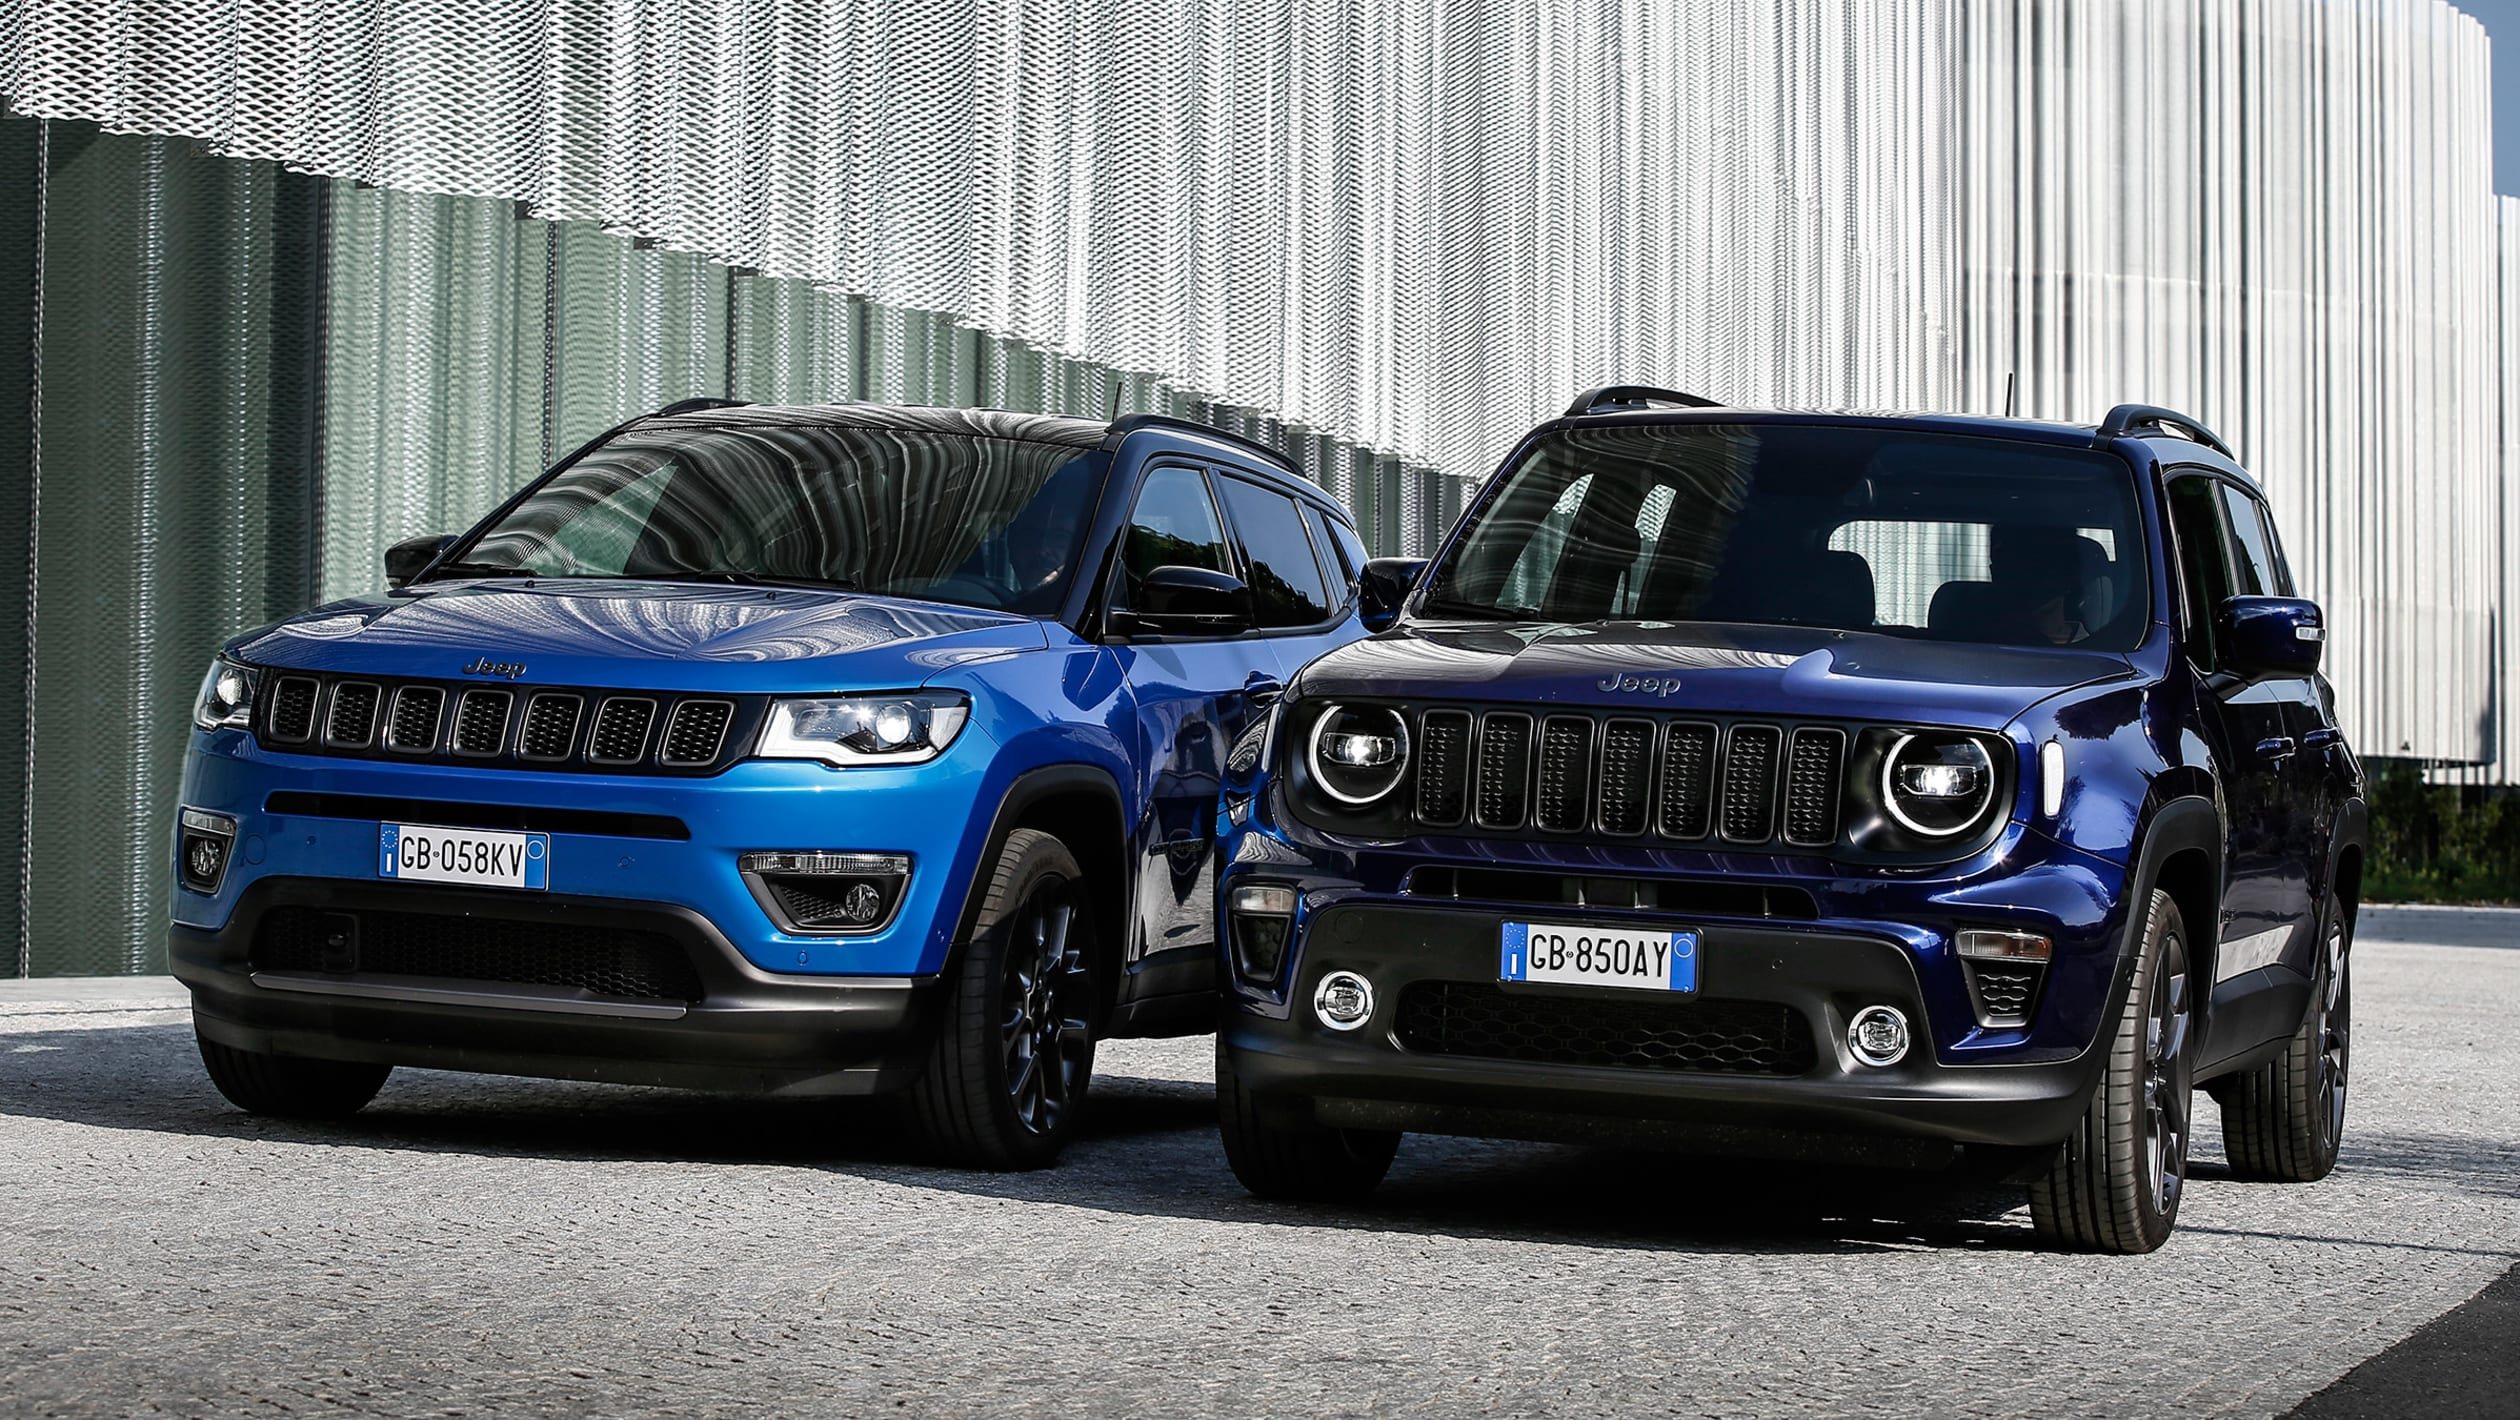 2014 - [Jeep] Renegade - Page 15 Jeep%20Renegade%204xe%20and%20Jeep%20Compass%204xe%202020